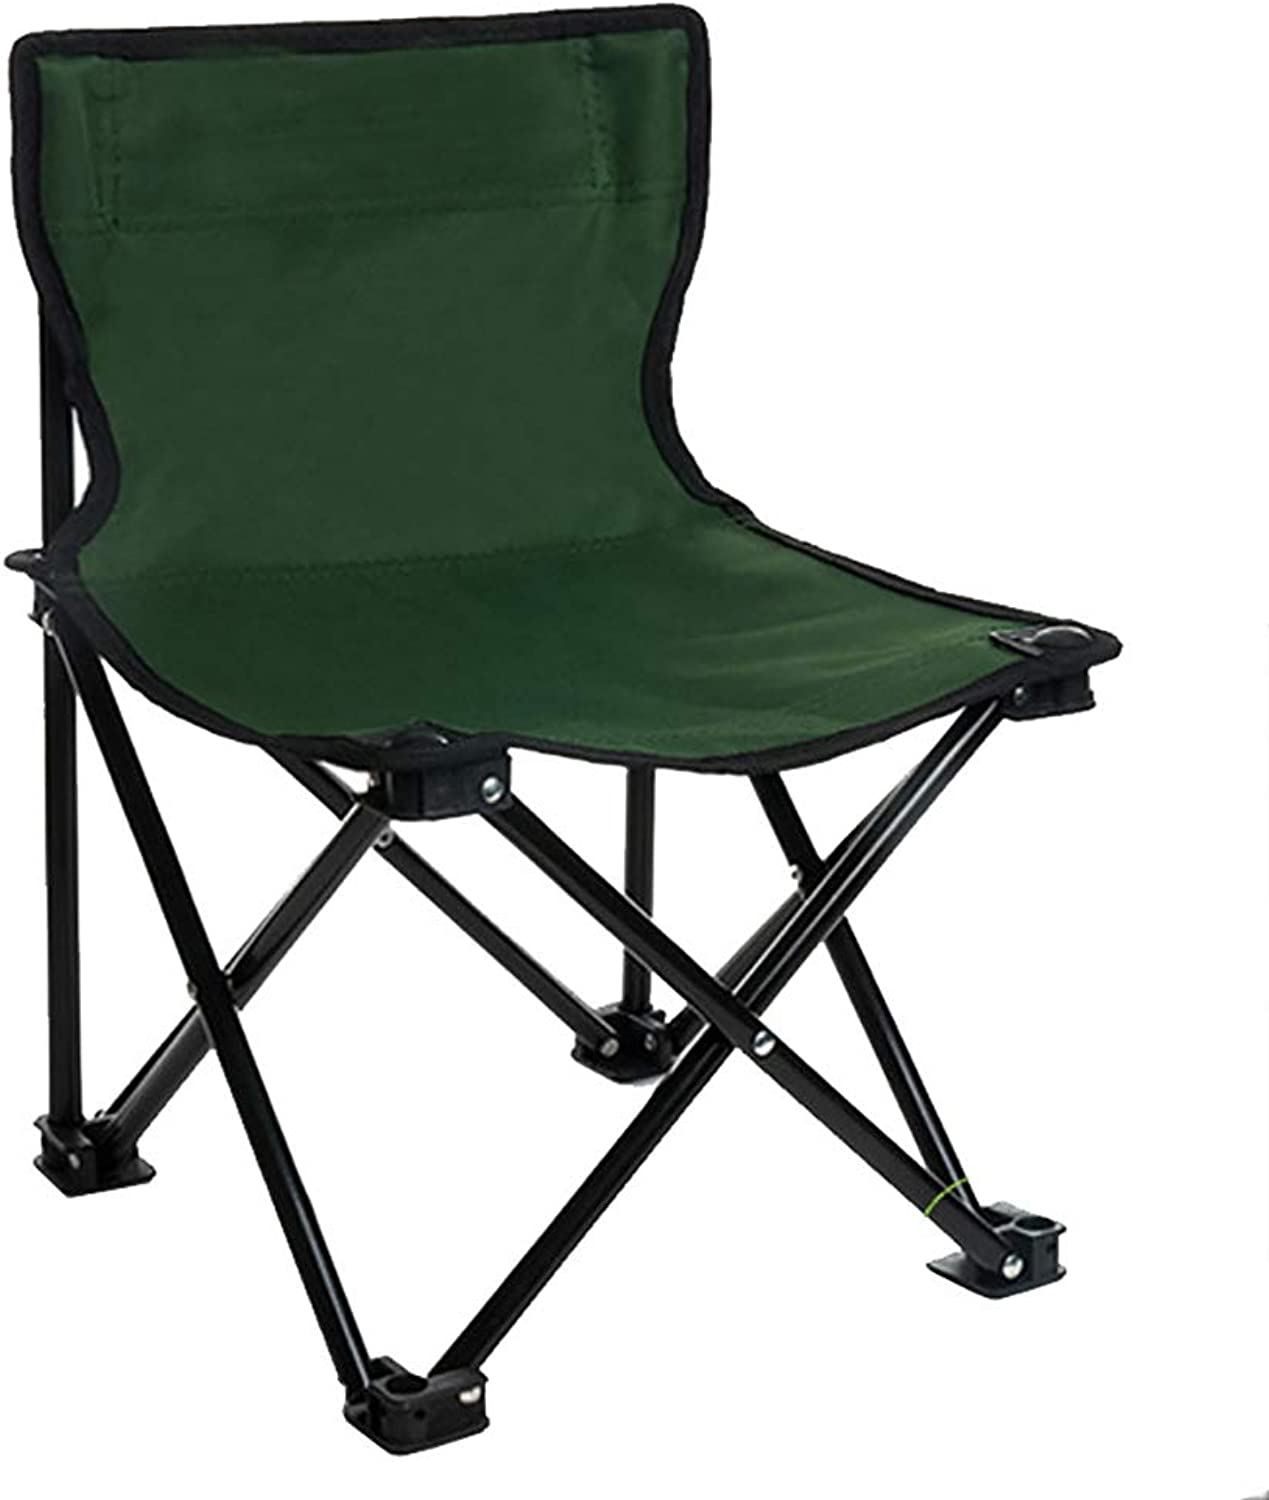 Camping Folding Chair High Back Portable with Carry Bag,for Outdoor,Lawn, Garden, Lightweight Aluminum Frame, Support 80kg,A,1pcs